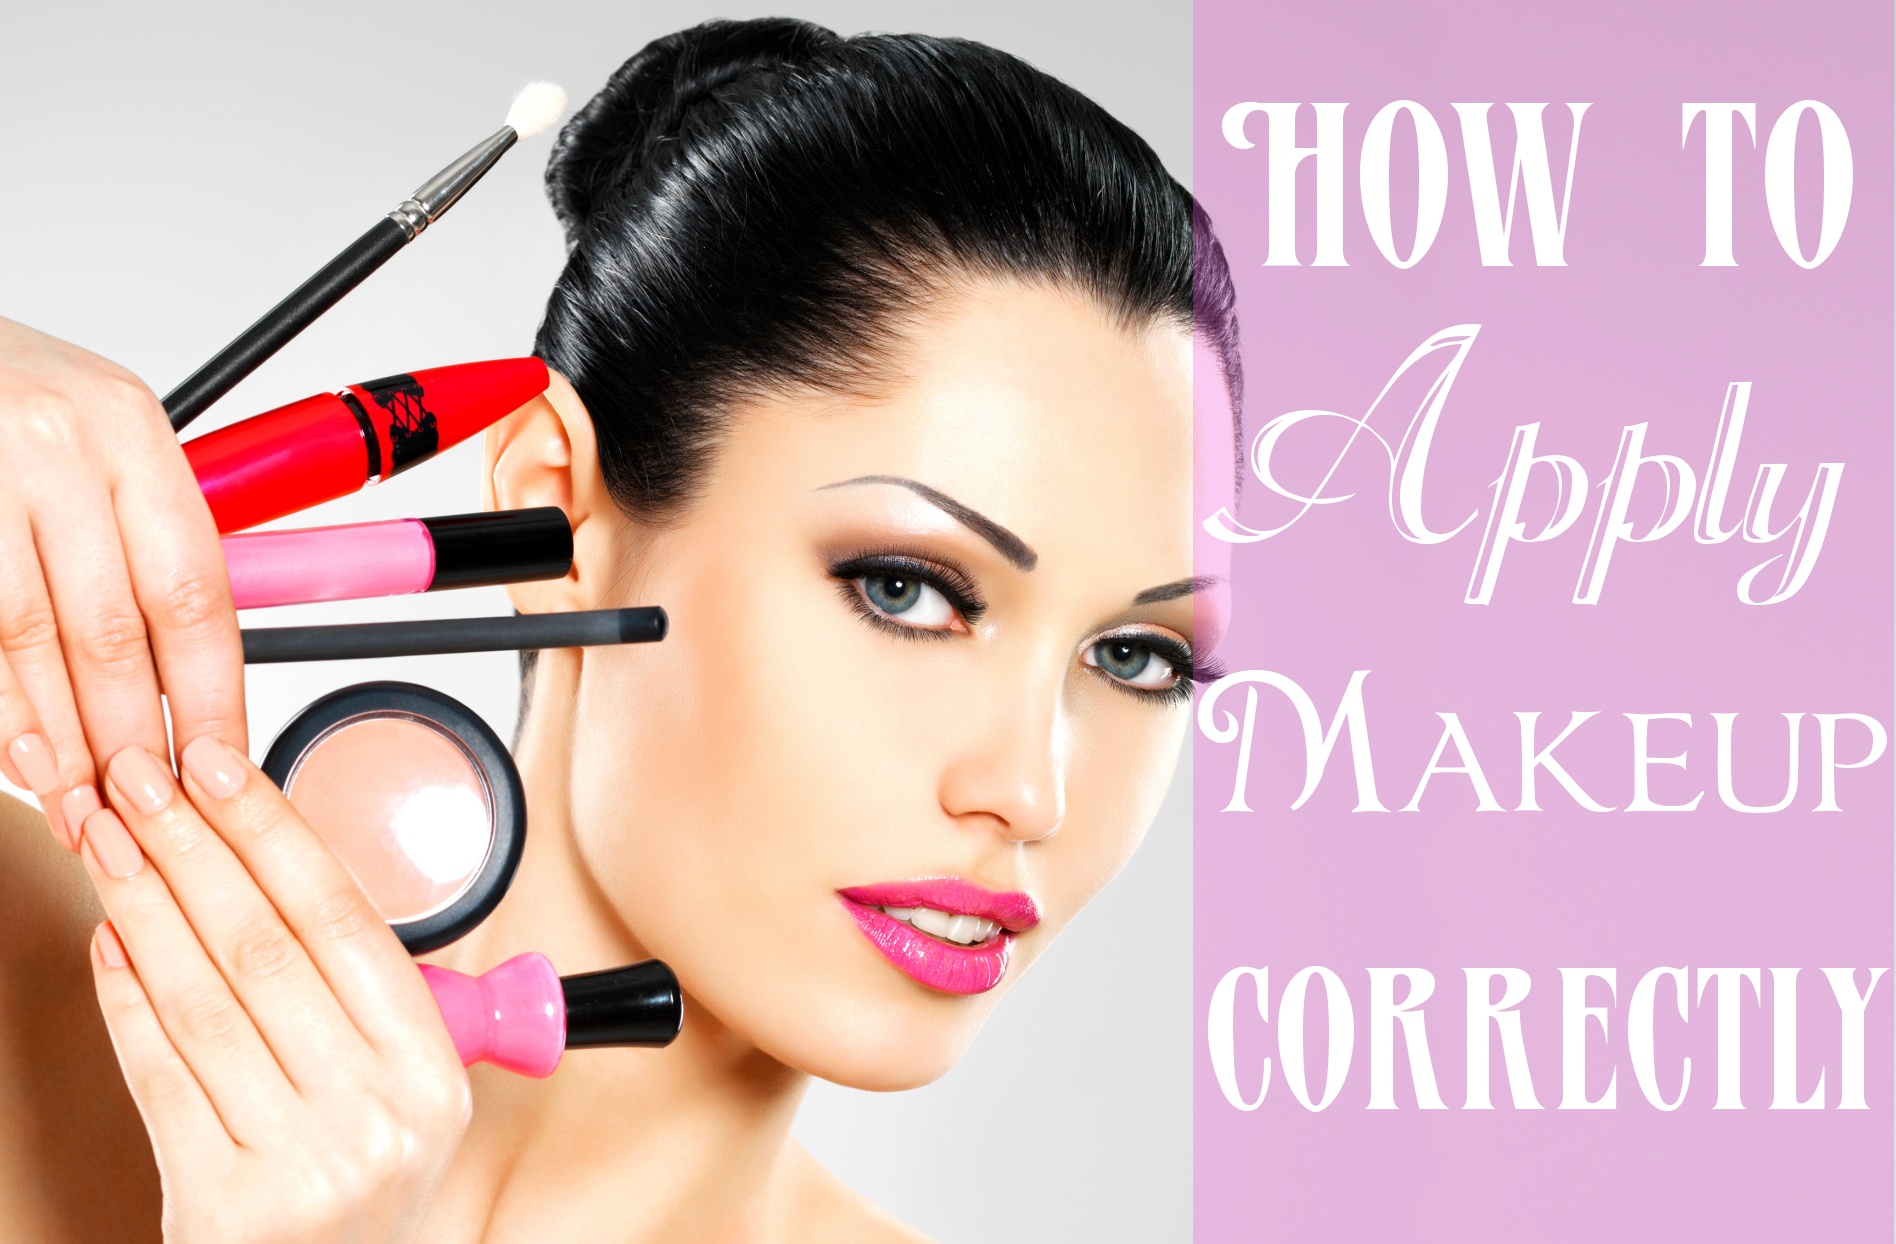 Steps To Apply Makeup Correctly · How